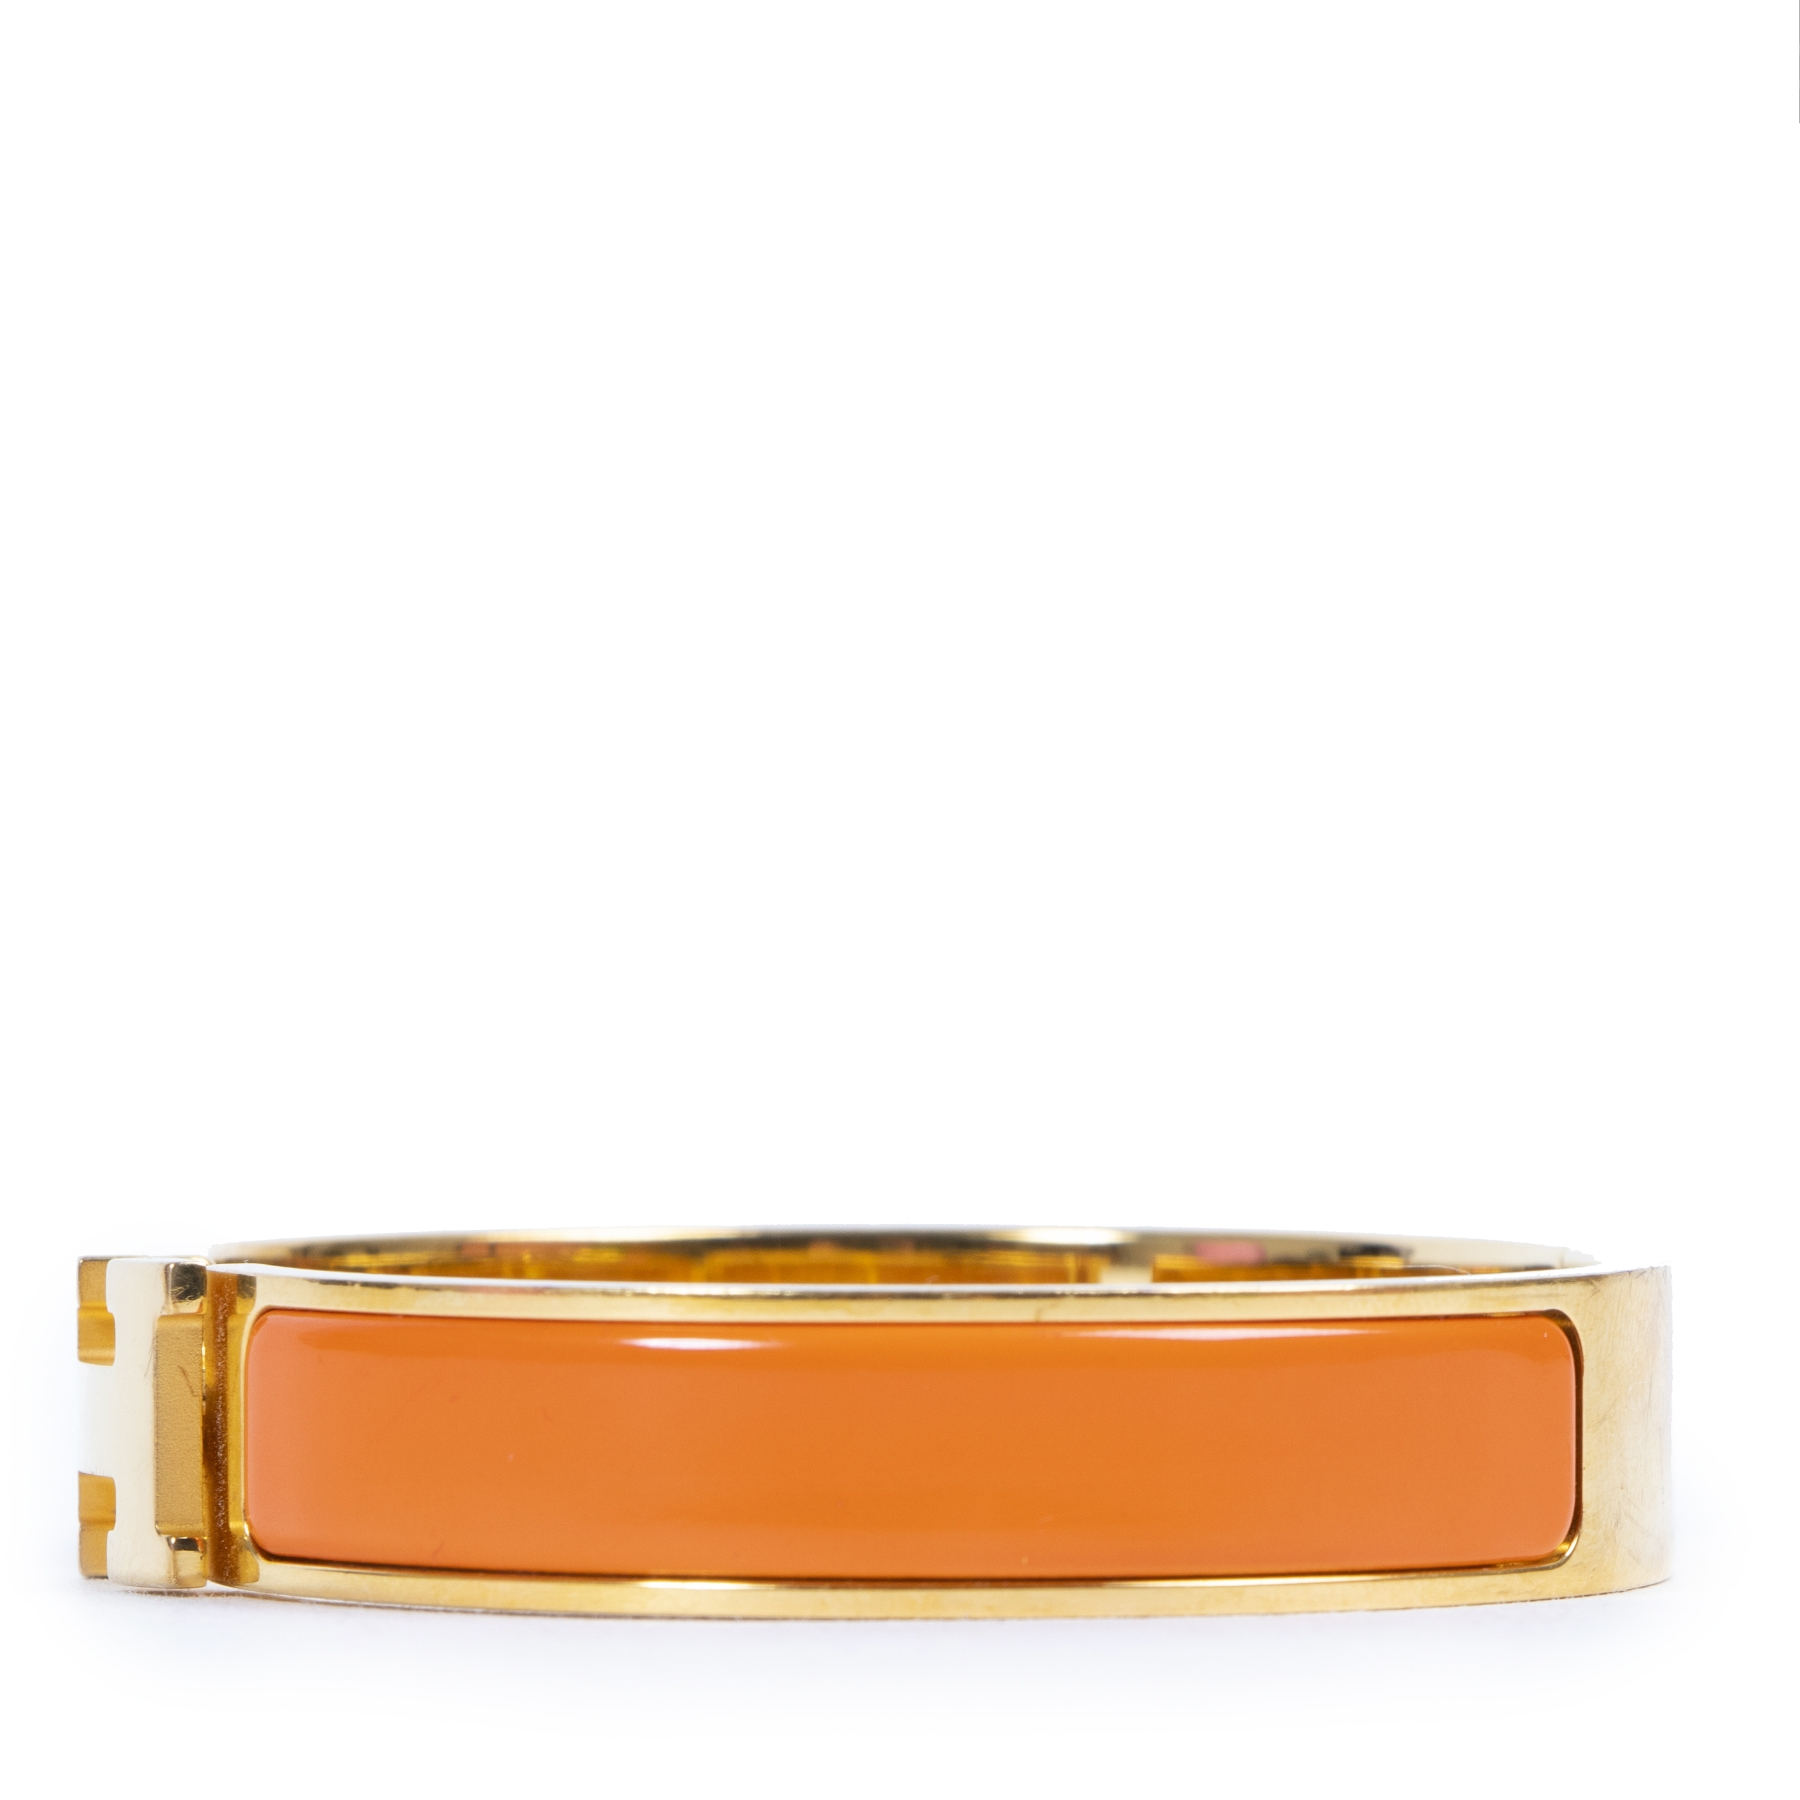 Buy authentic second hand Hermès bracelets with right price at LabelLOV.